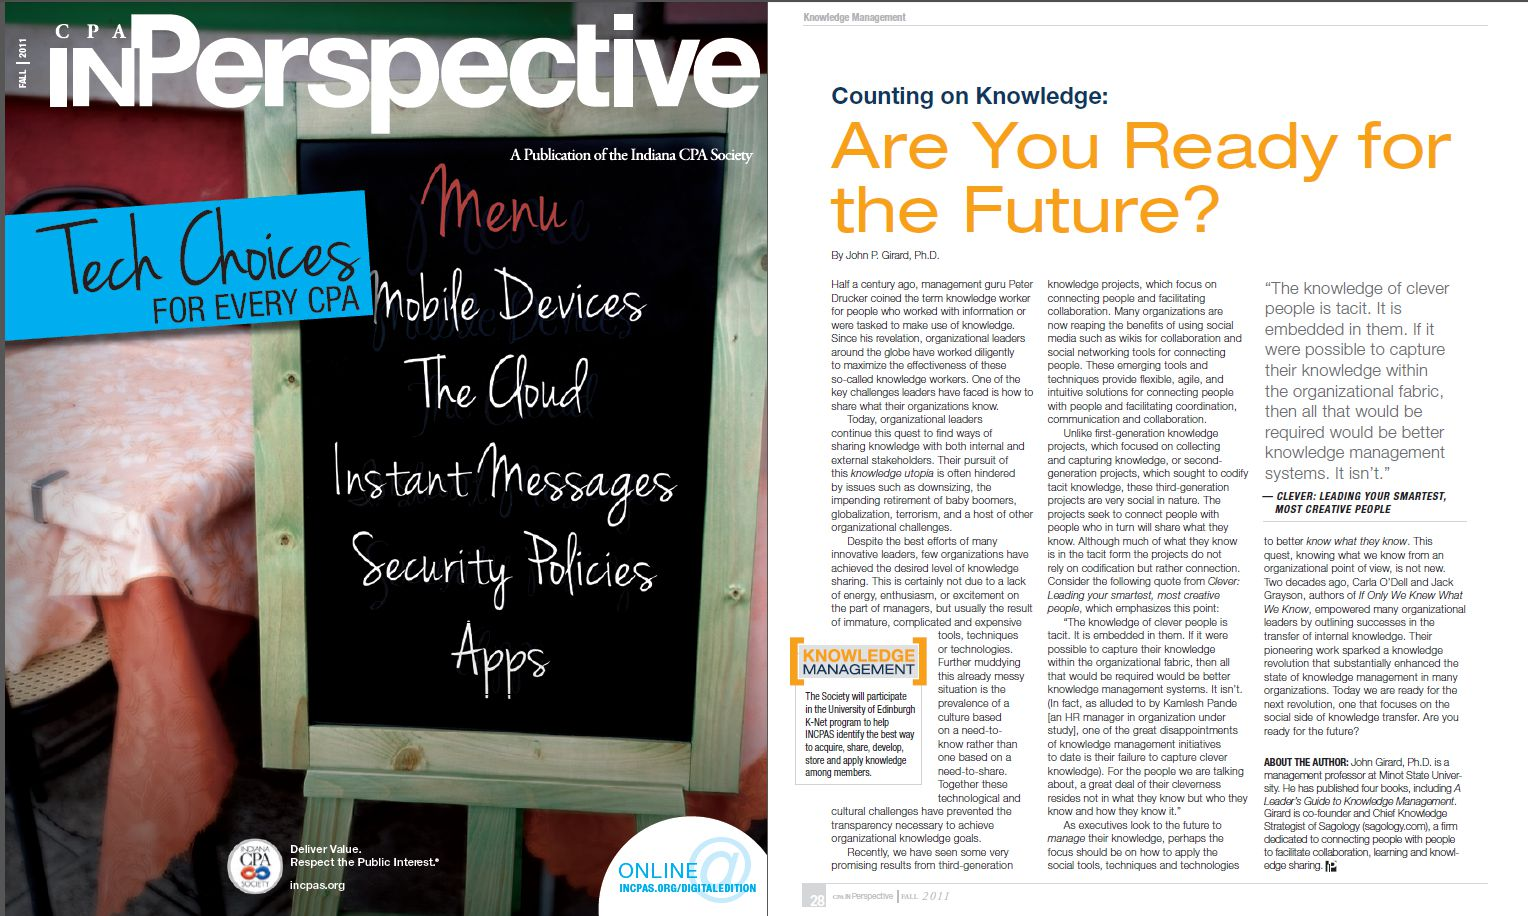 Counting on Knowledge: Are You Ready for the Future?